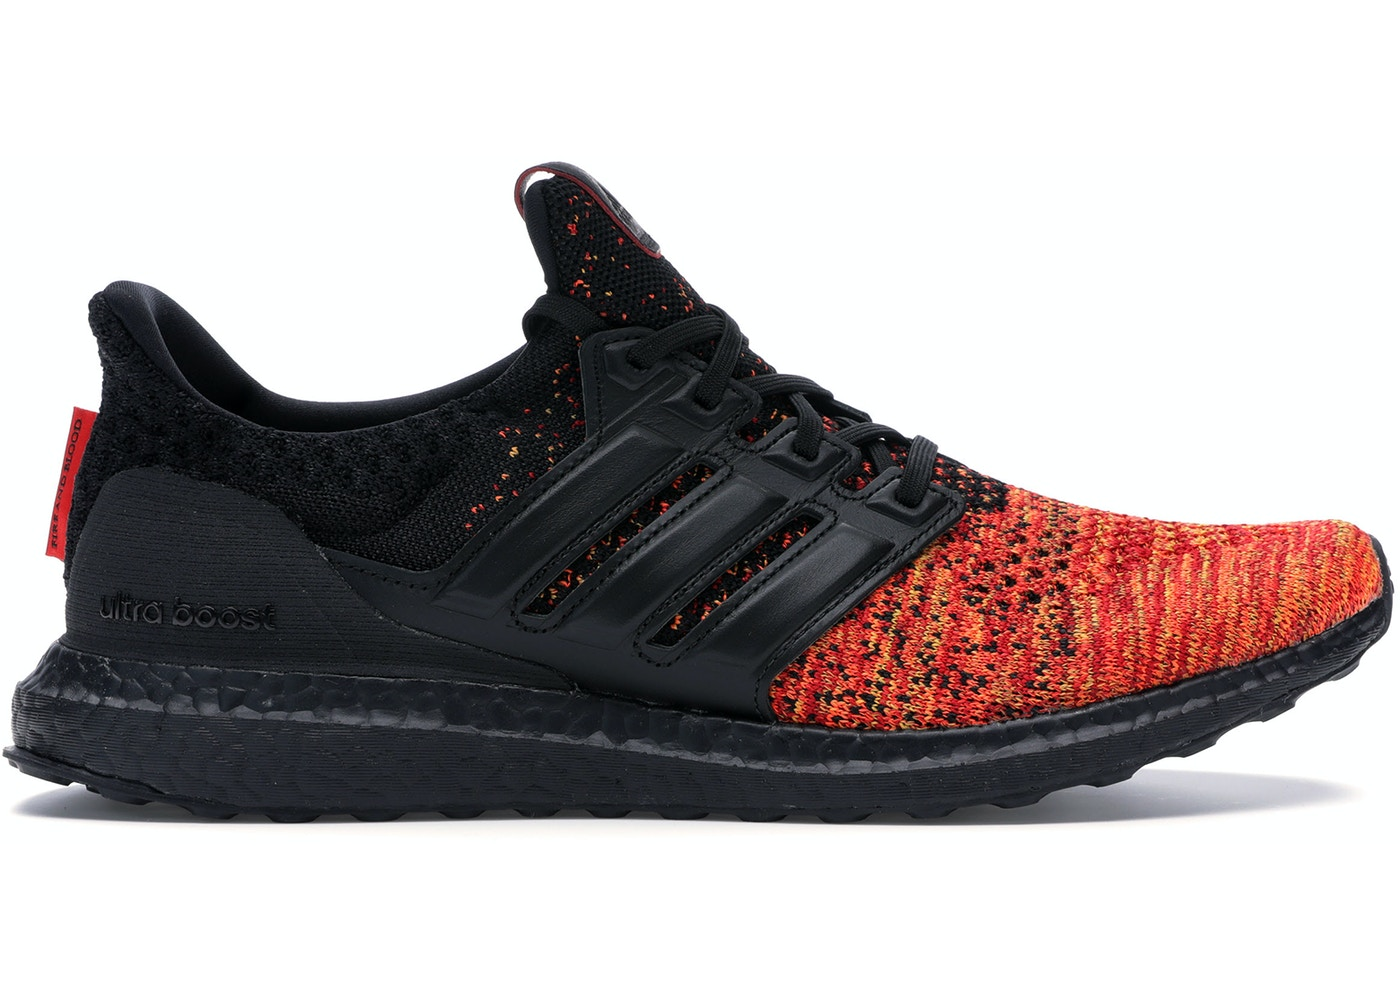 c7c3a538 adidas Ultra Boost 4.0 Game of Thrones Targaryen Dragons